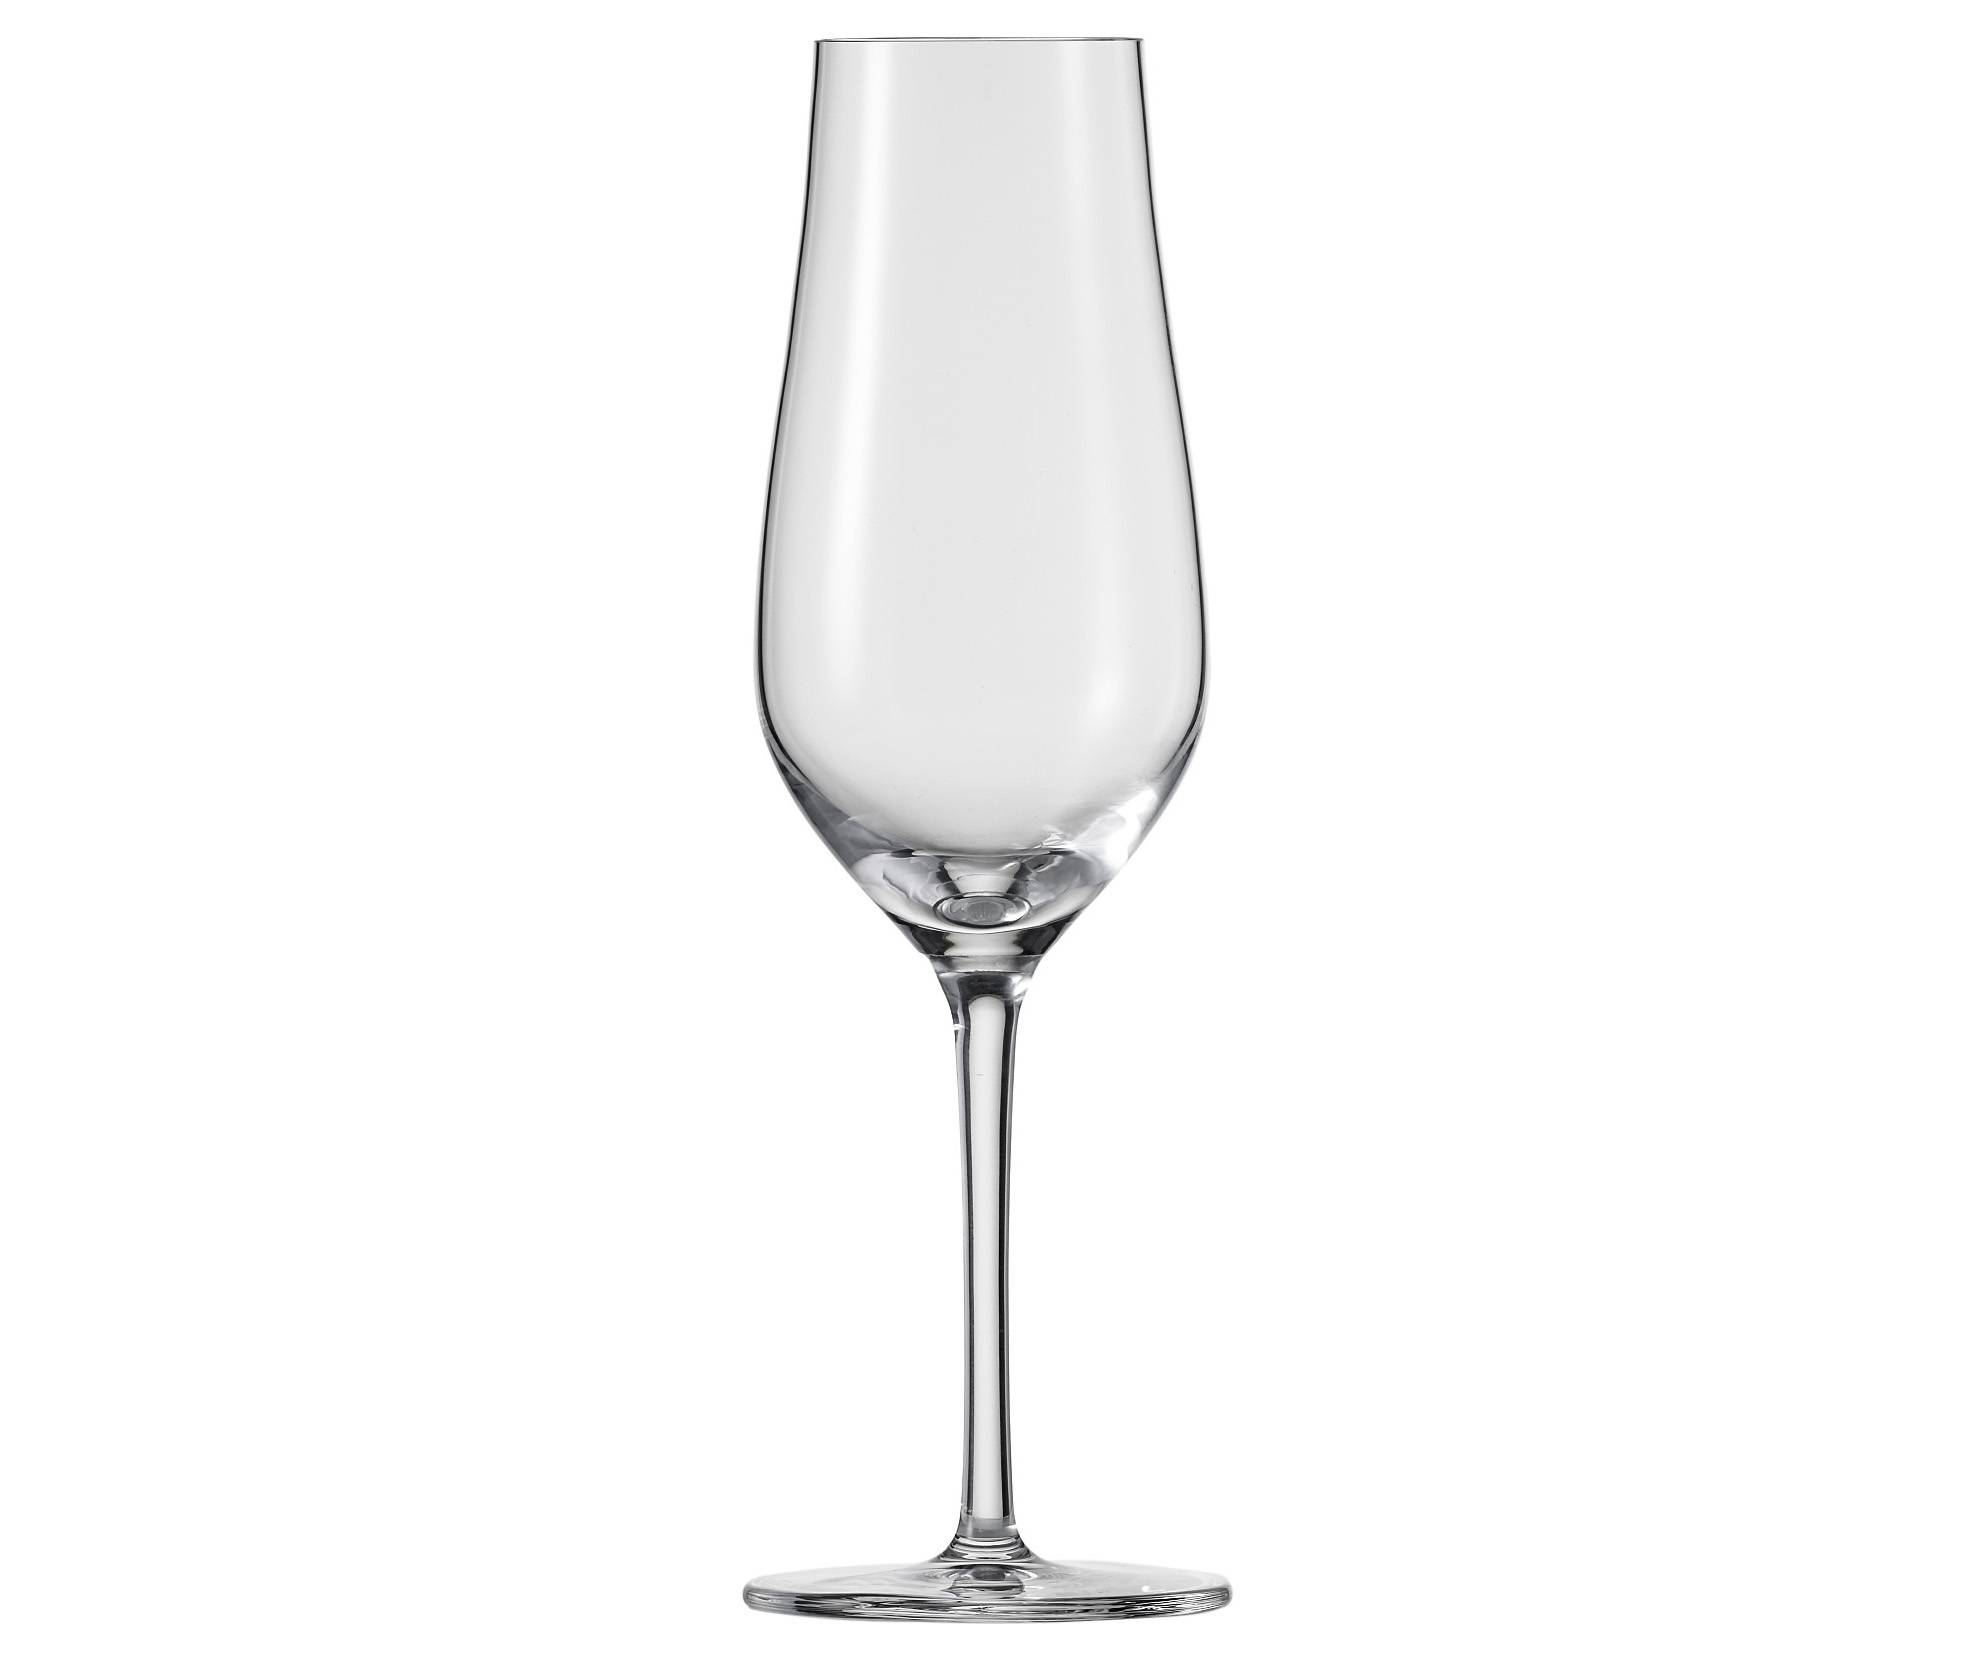 Concerto fluted champagne glasses plum street pottery - Fluted wine glasses ...